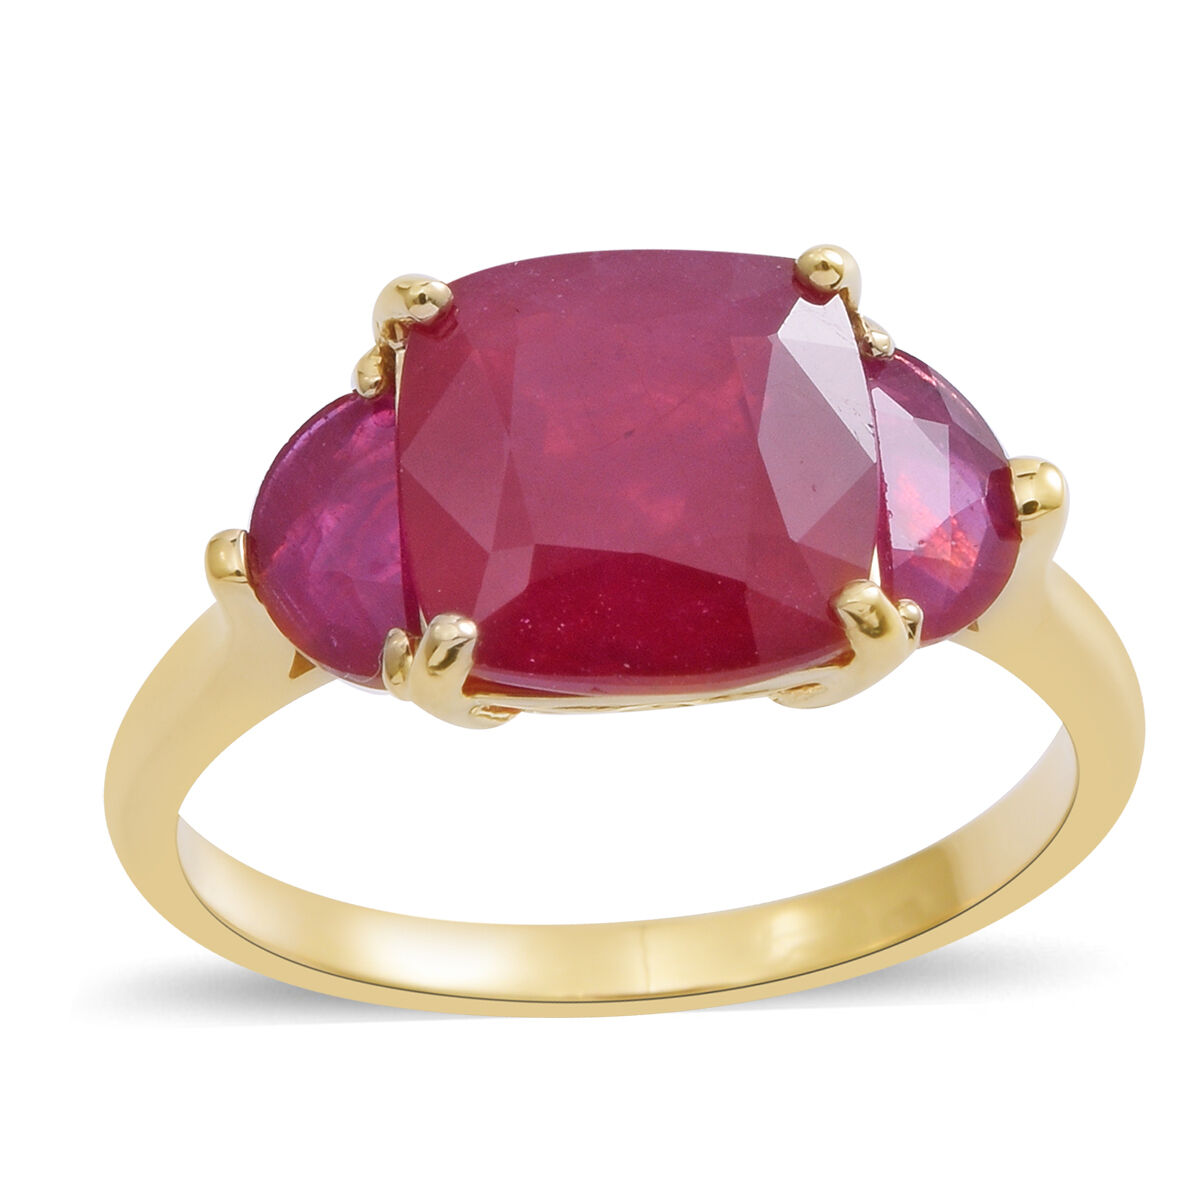 9K Yellow Gold AAA Rare Size Ruby Solitaire Ring 8.5 Ct aL1vnA